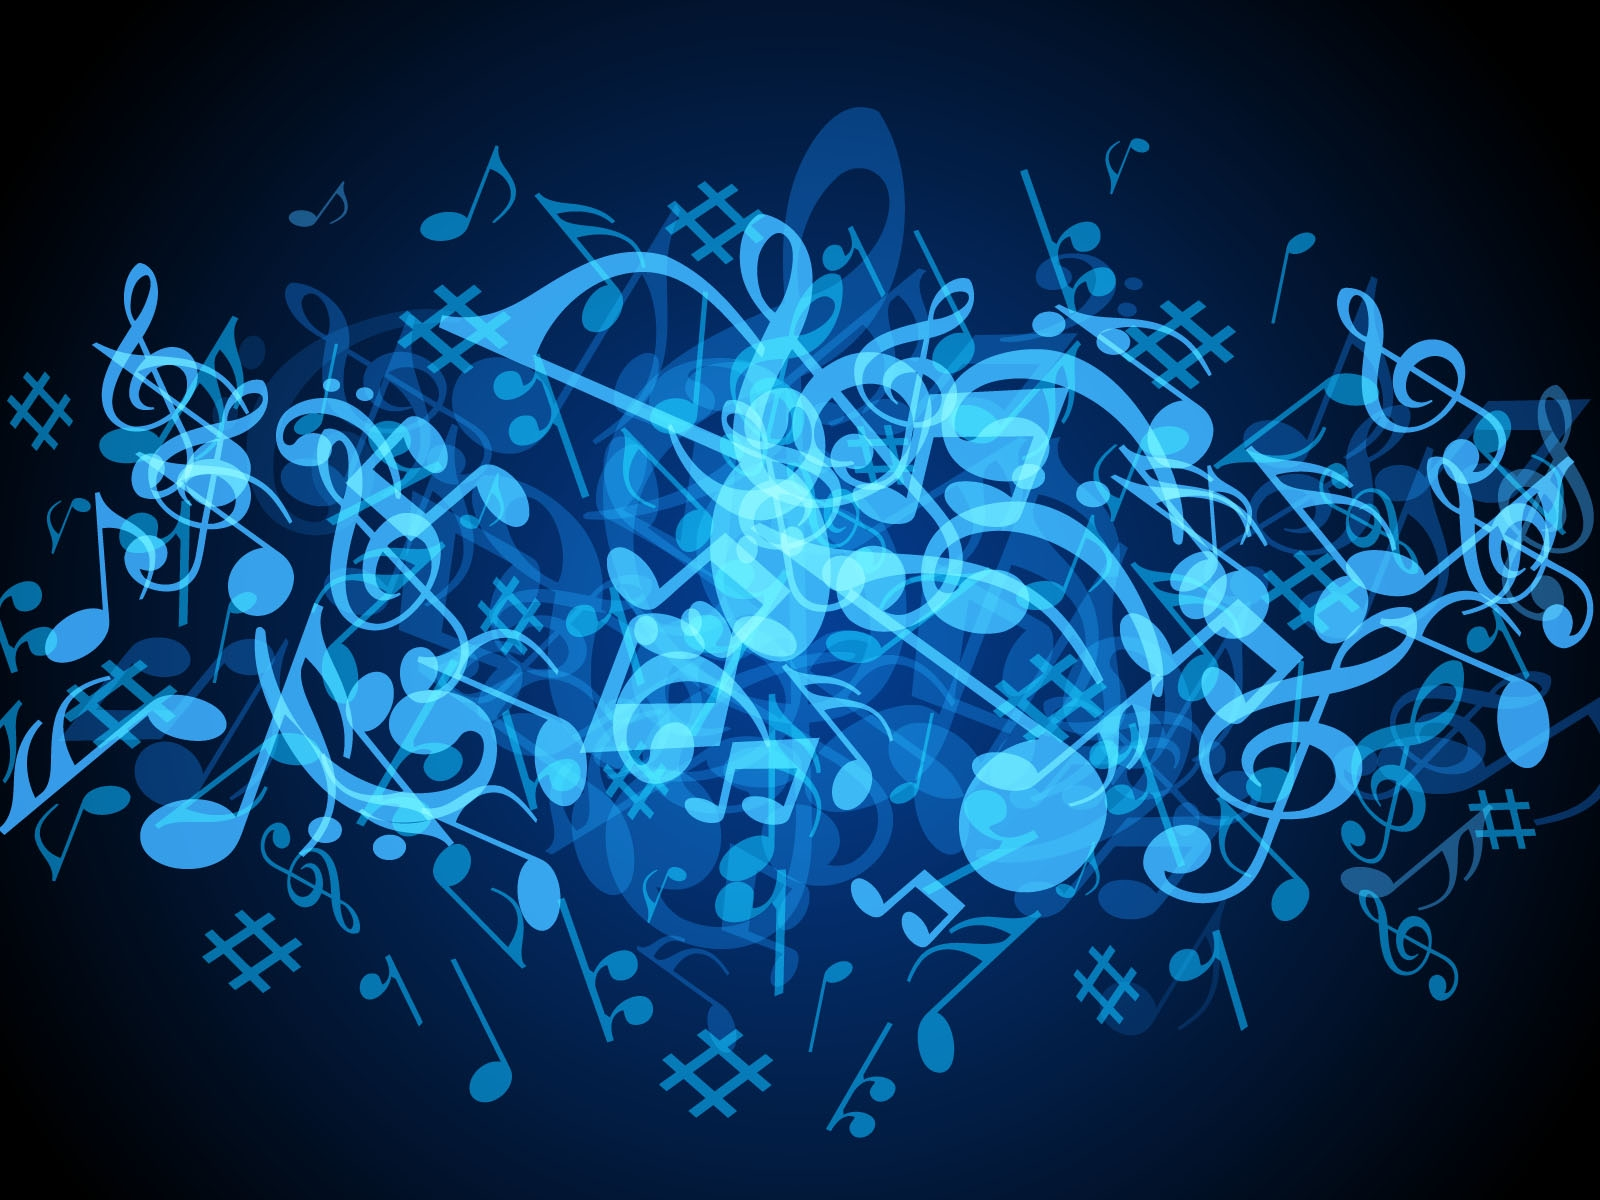 Abstract Music Wallpaper 48716